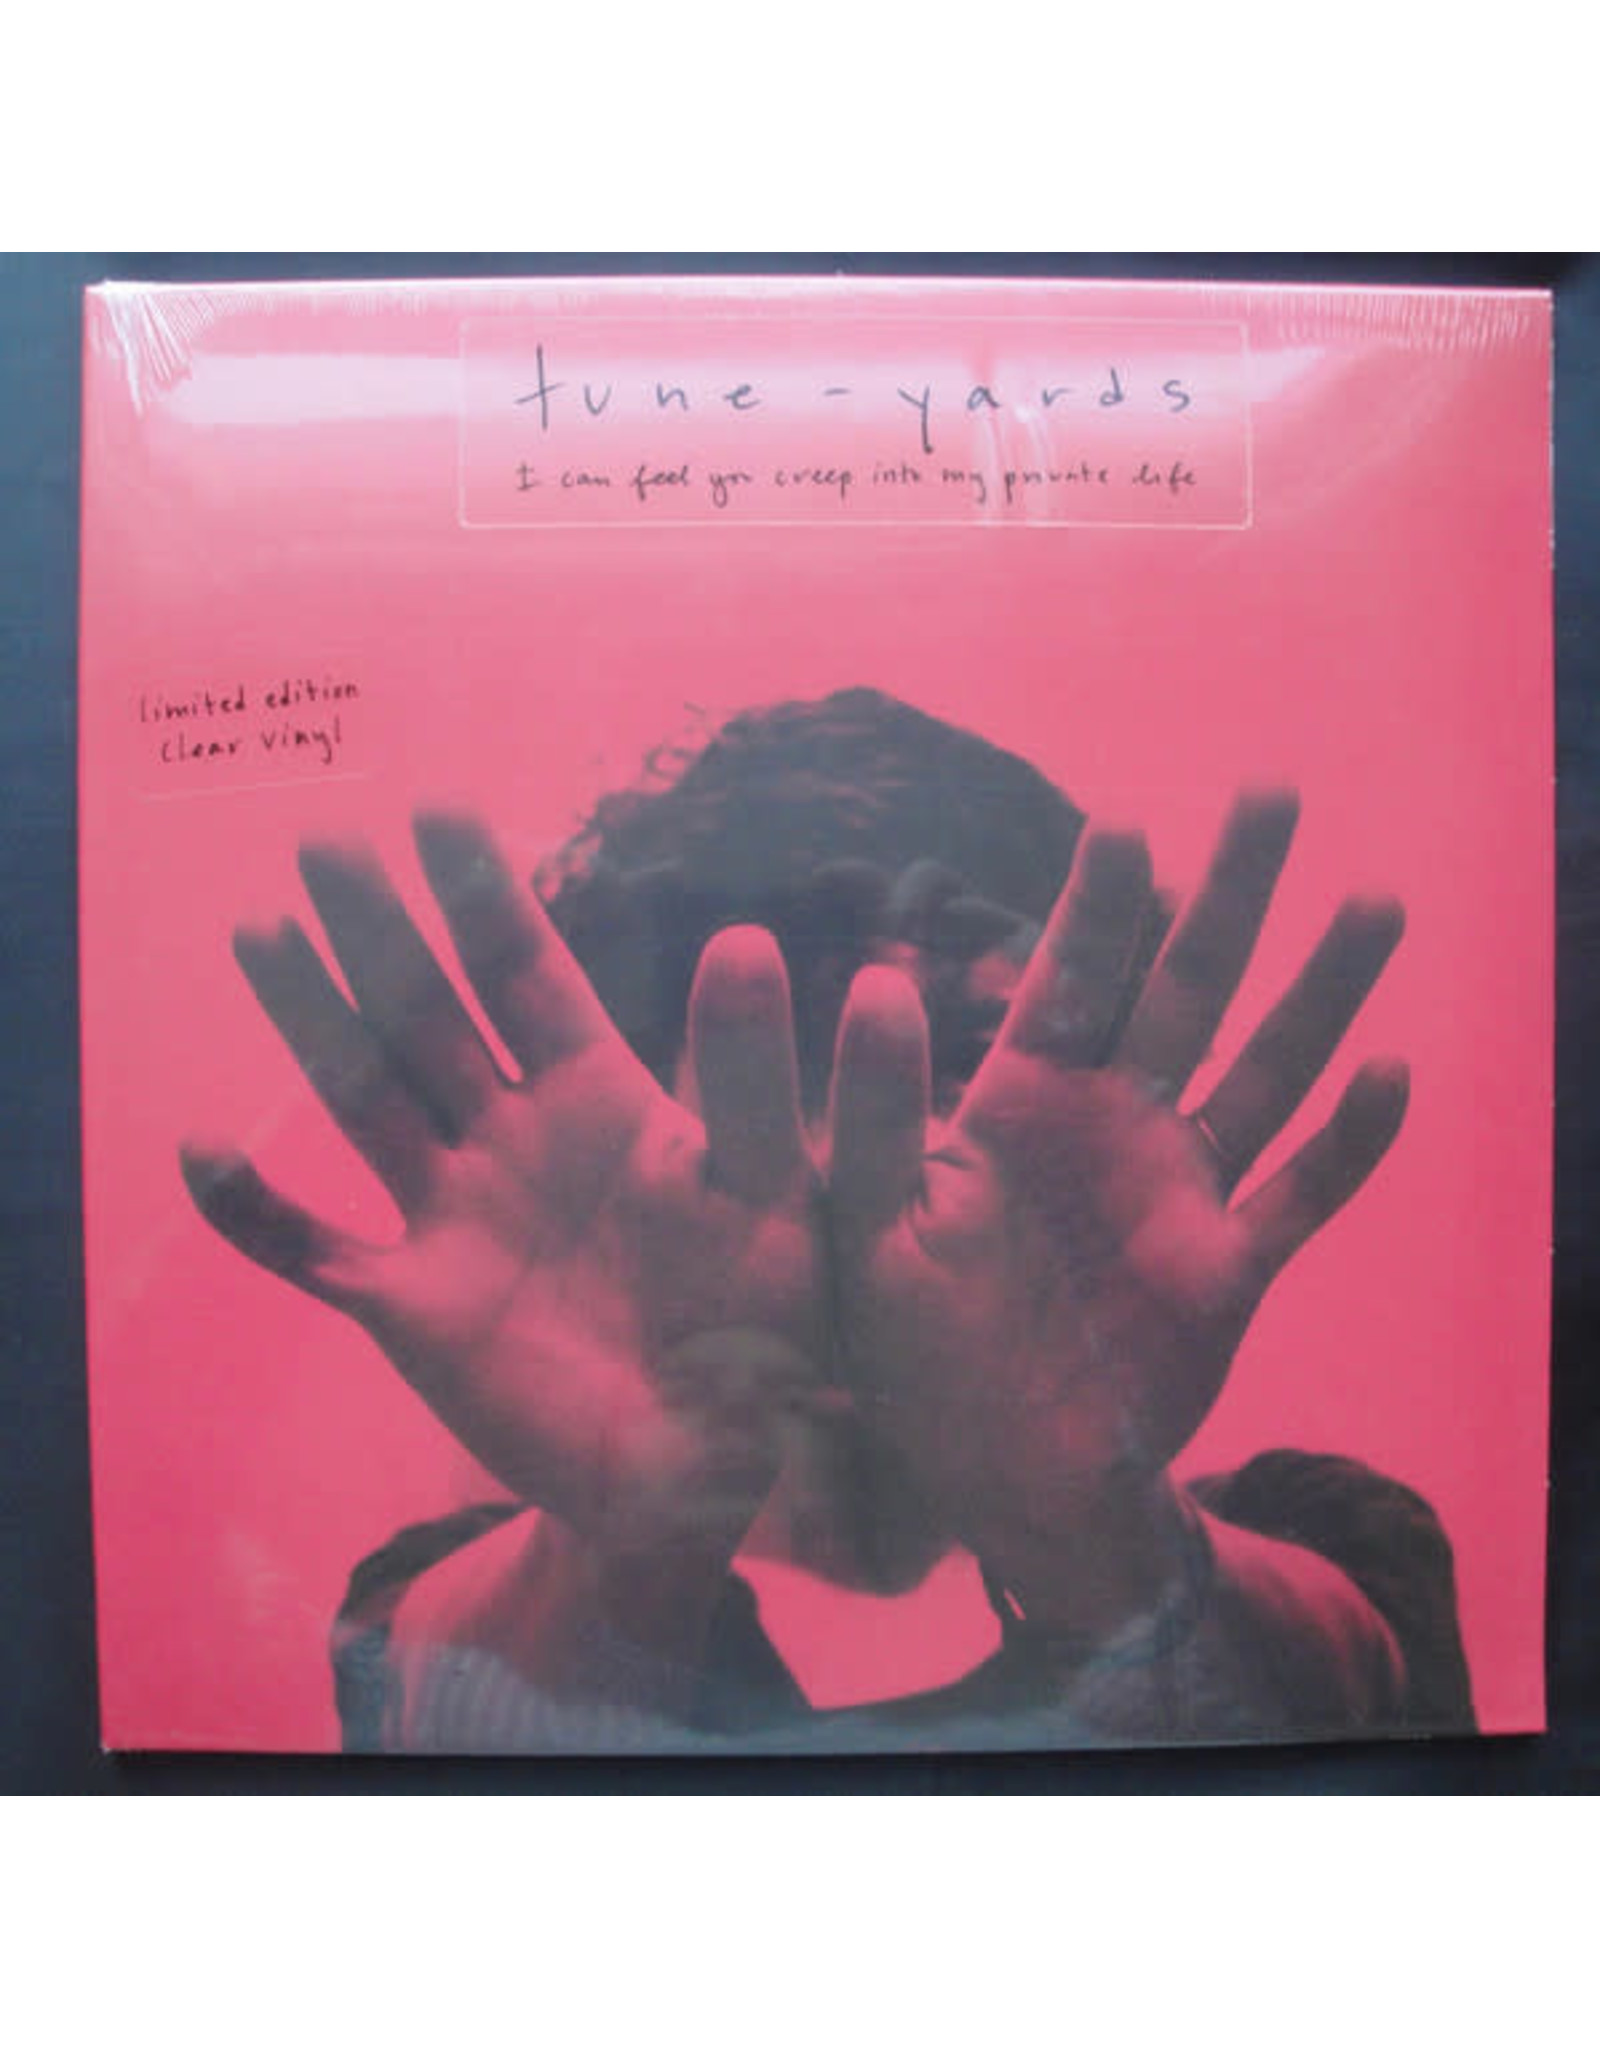 Tune-Yards - I Can Feel You Creep Into My Private Life (Ltd. Red Cover) LP